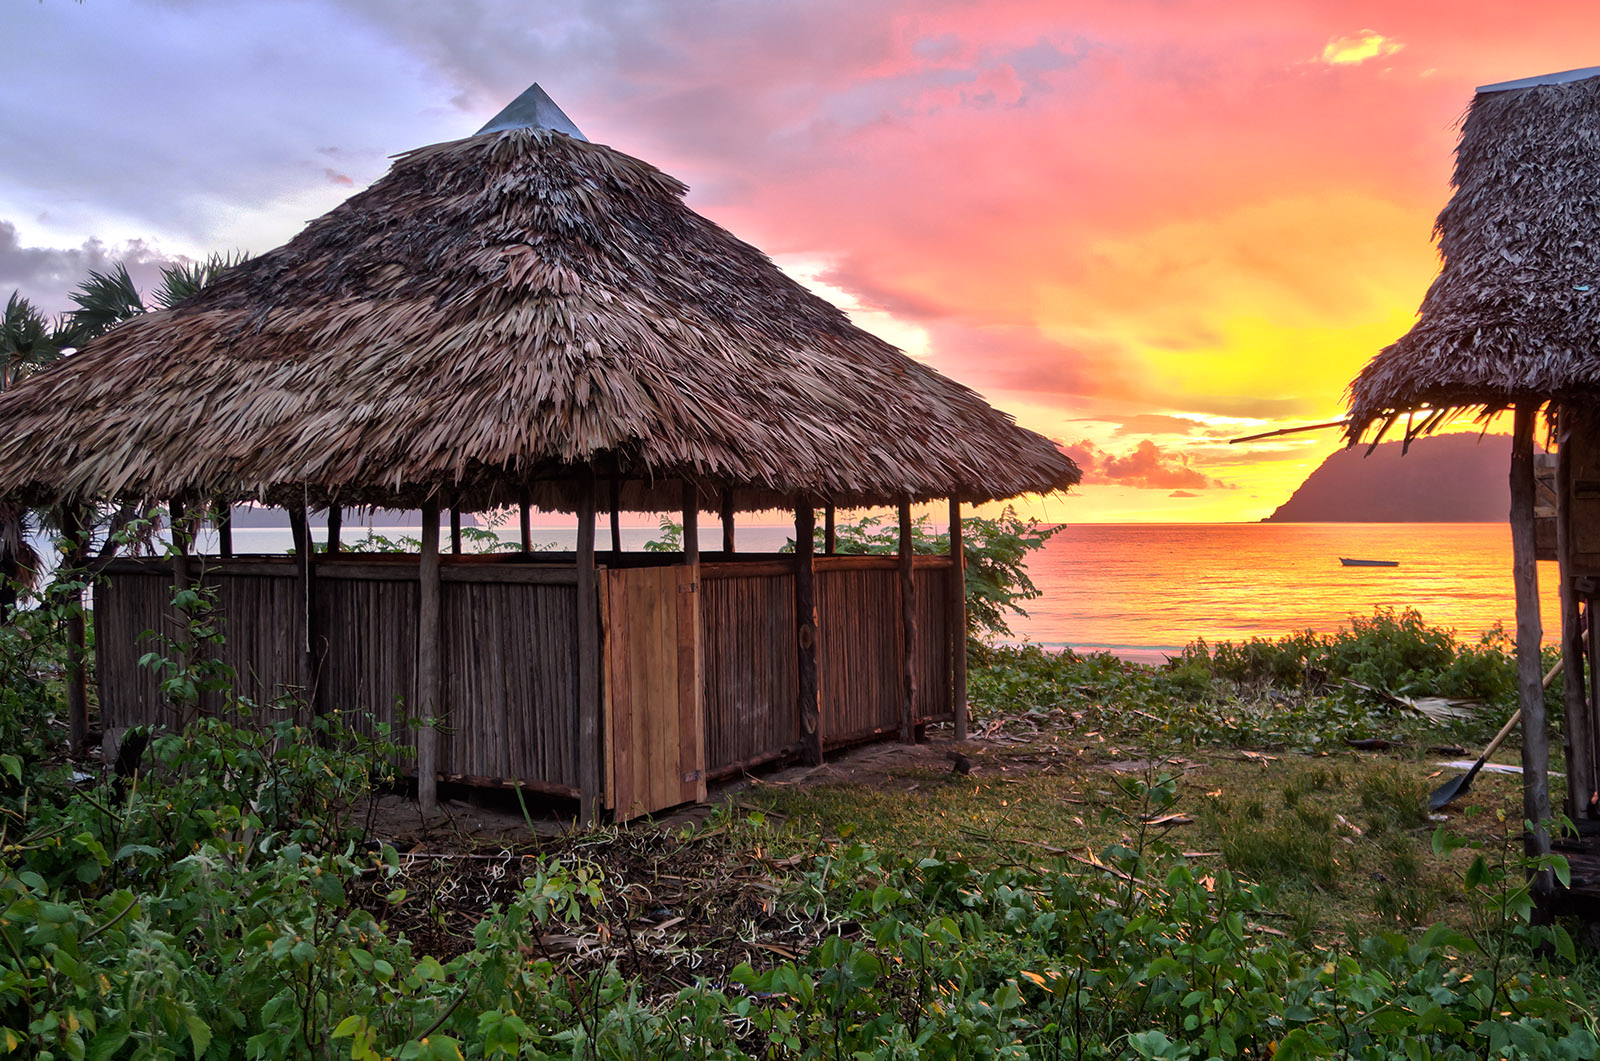 Our newly rebuilt team meeting hut in front of a beautiful Nosy Mitsio sunset. We believe good things are on their way!